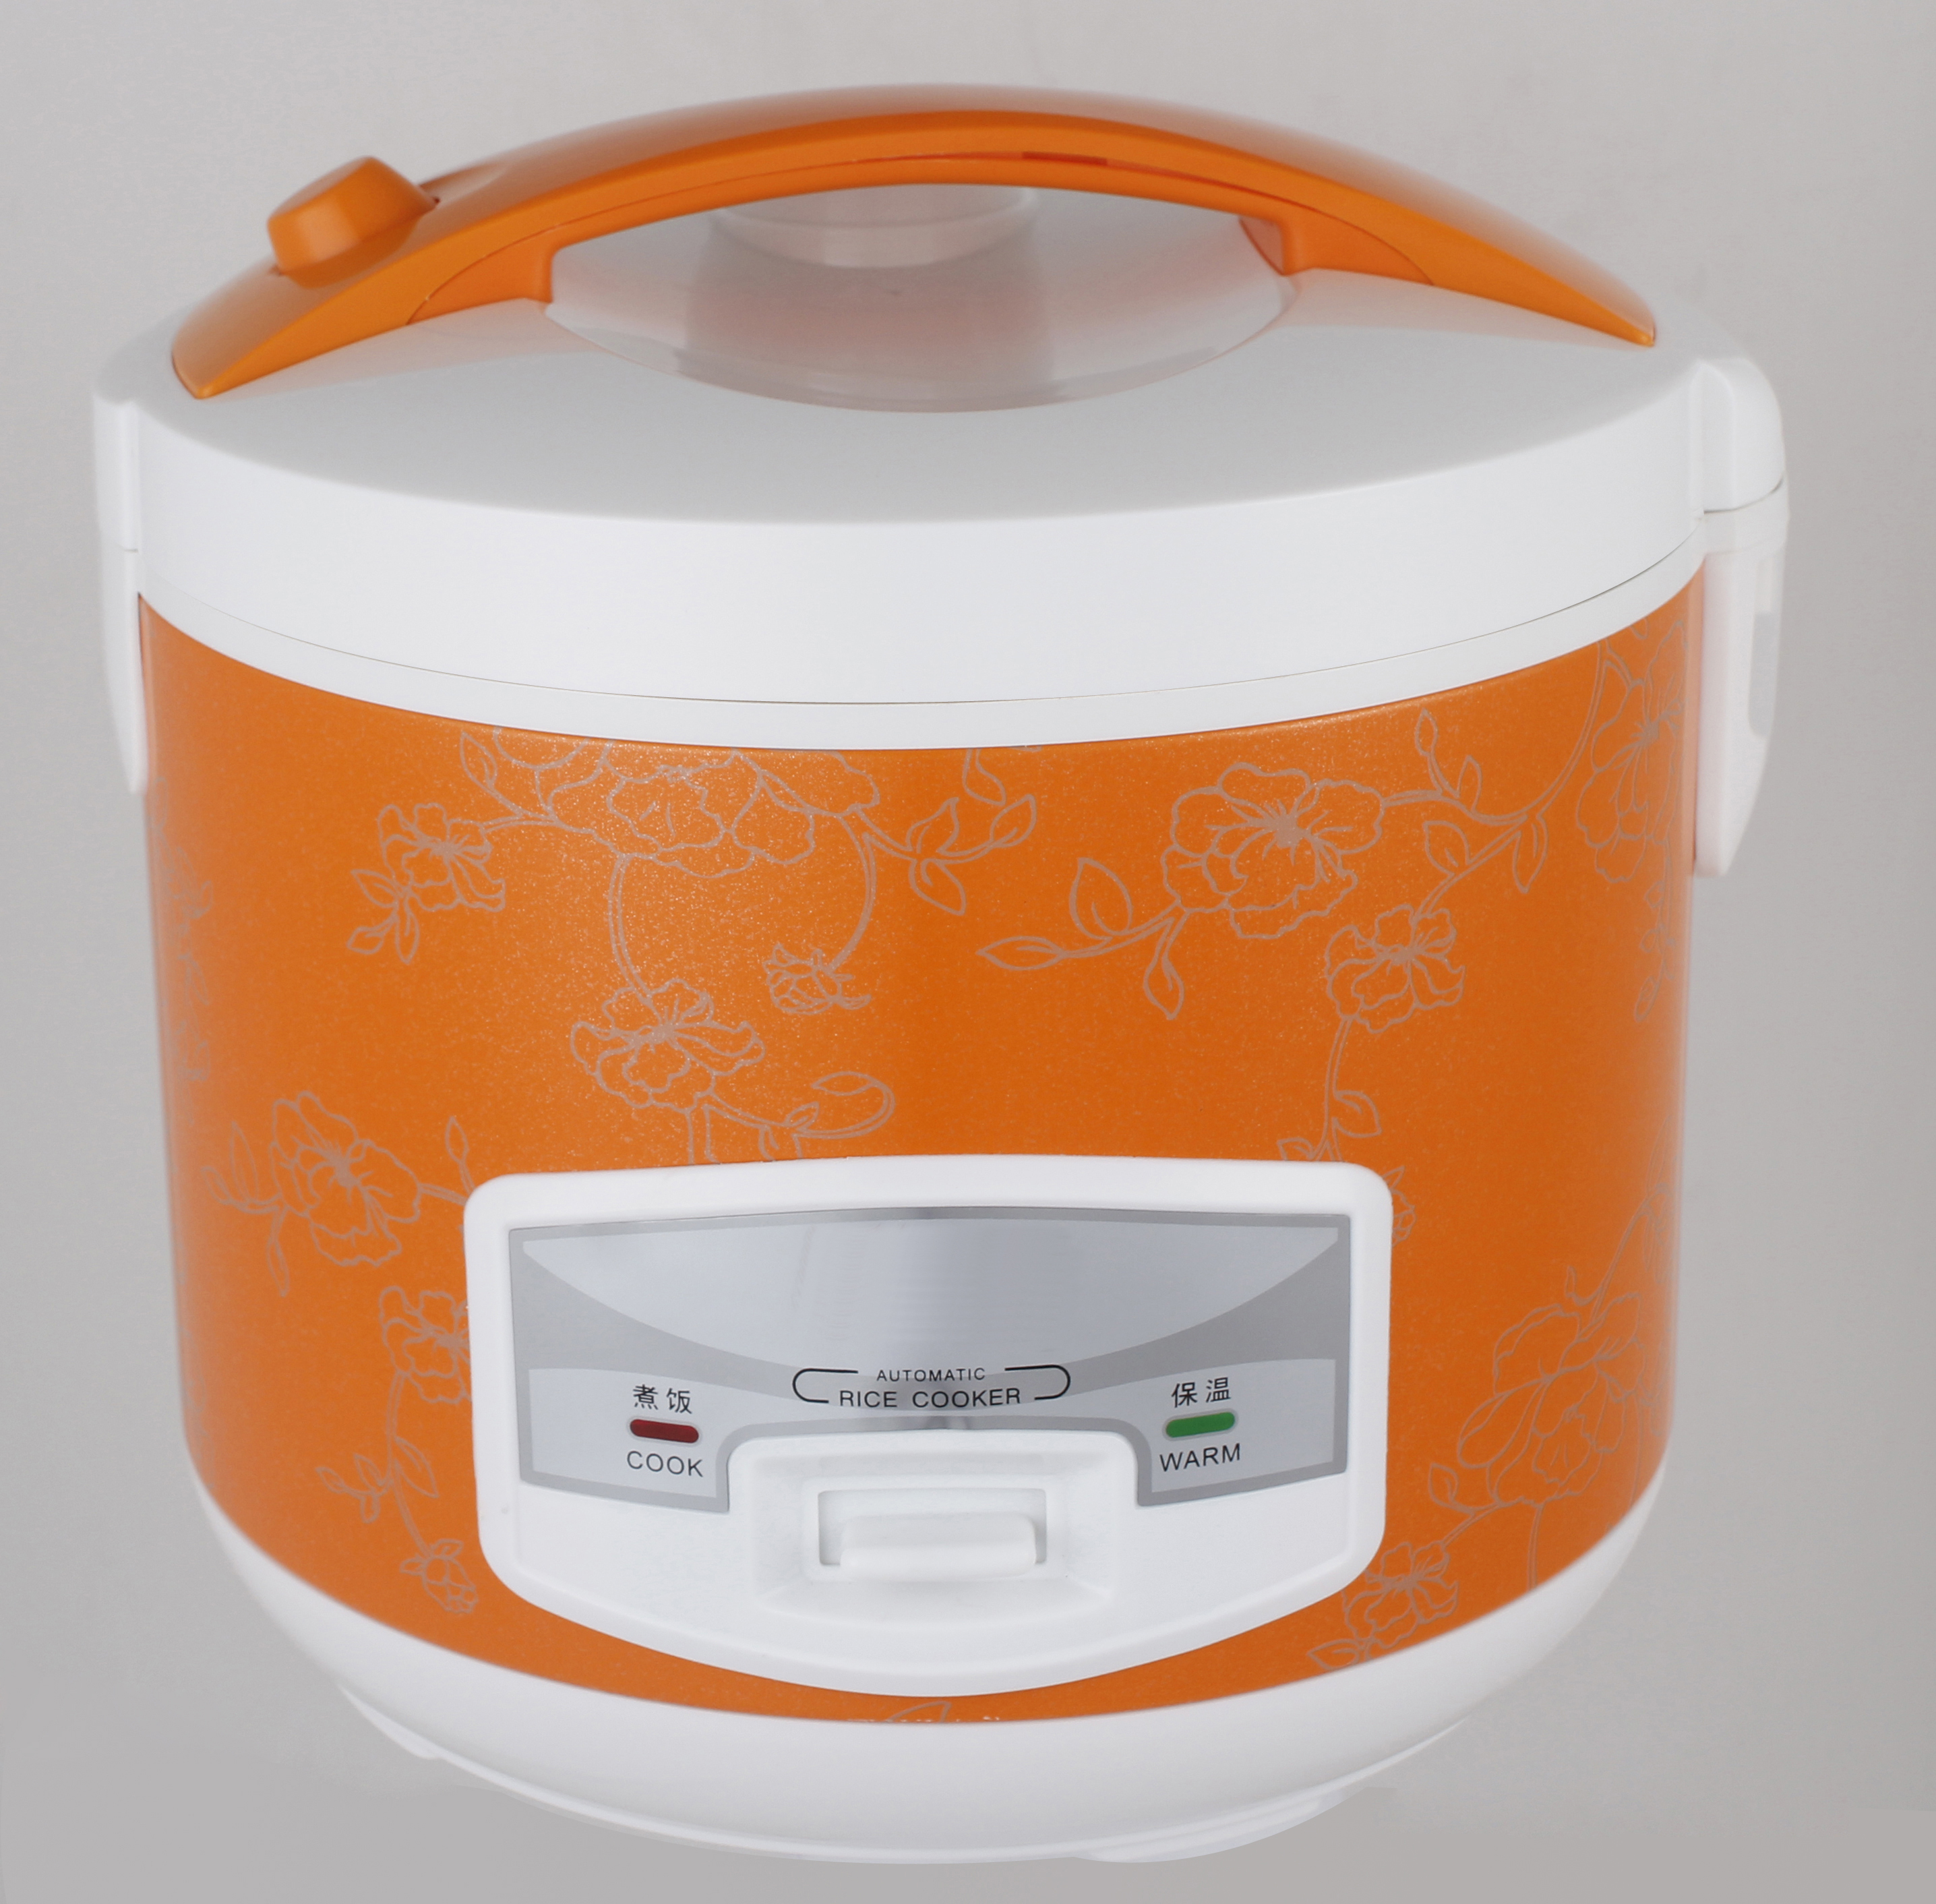 Deluxe rice cooker   TPXB40-02